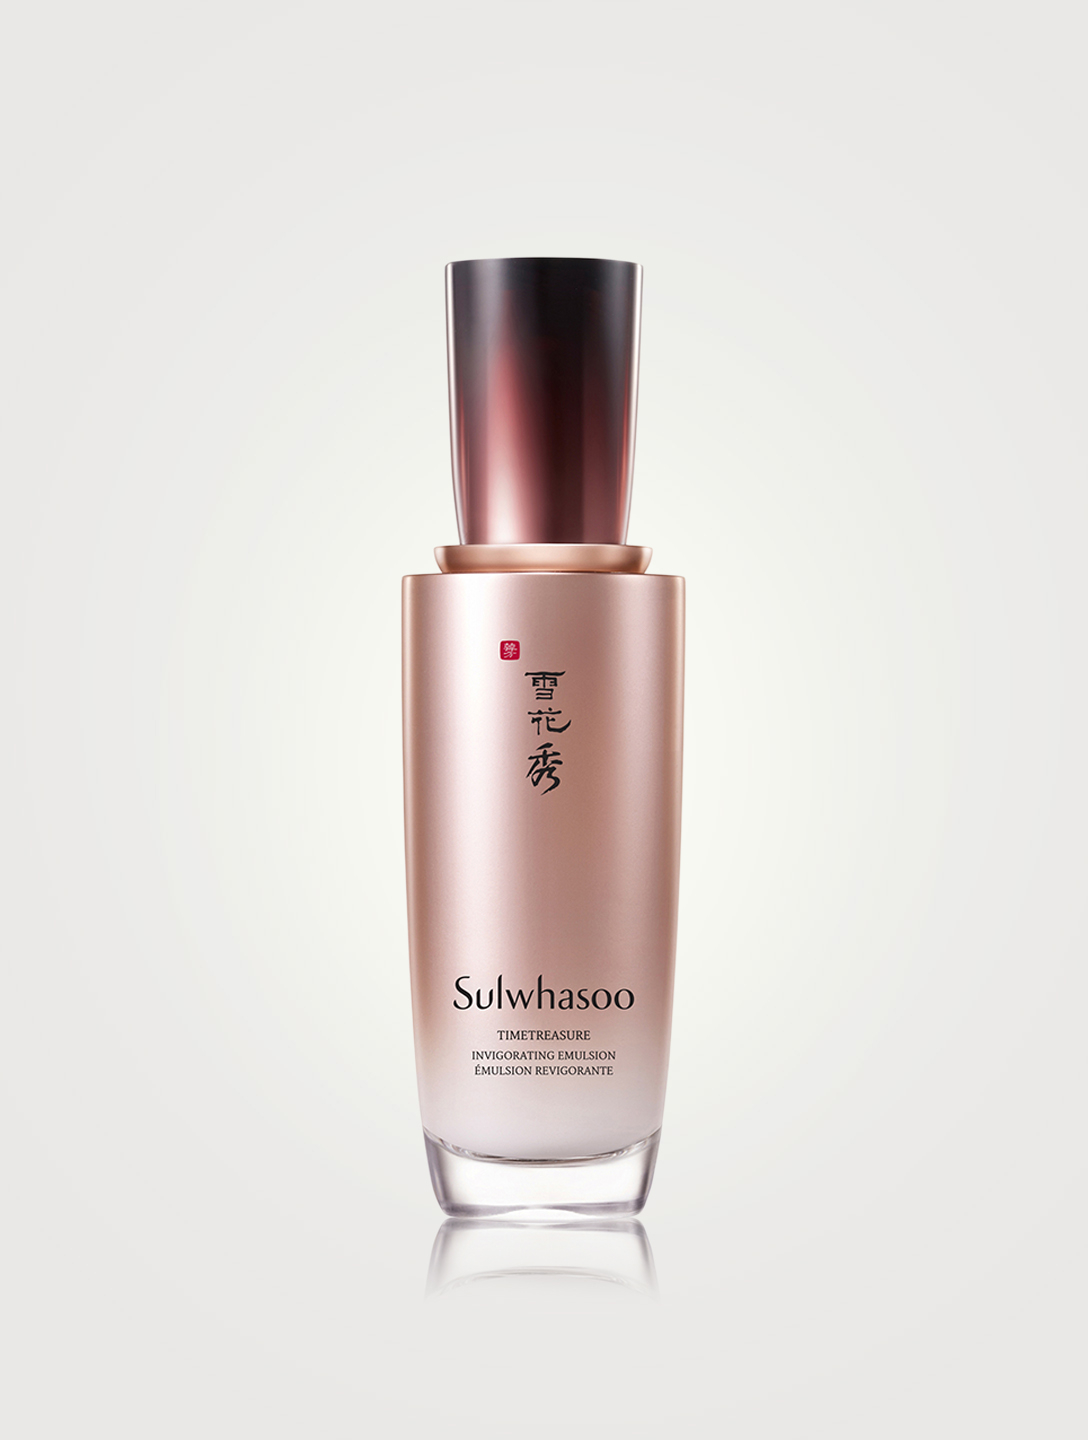 SULWHASOO Émulsion revigorante Timetreasure Beauté